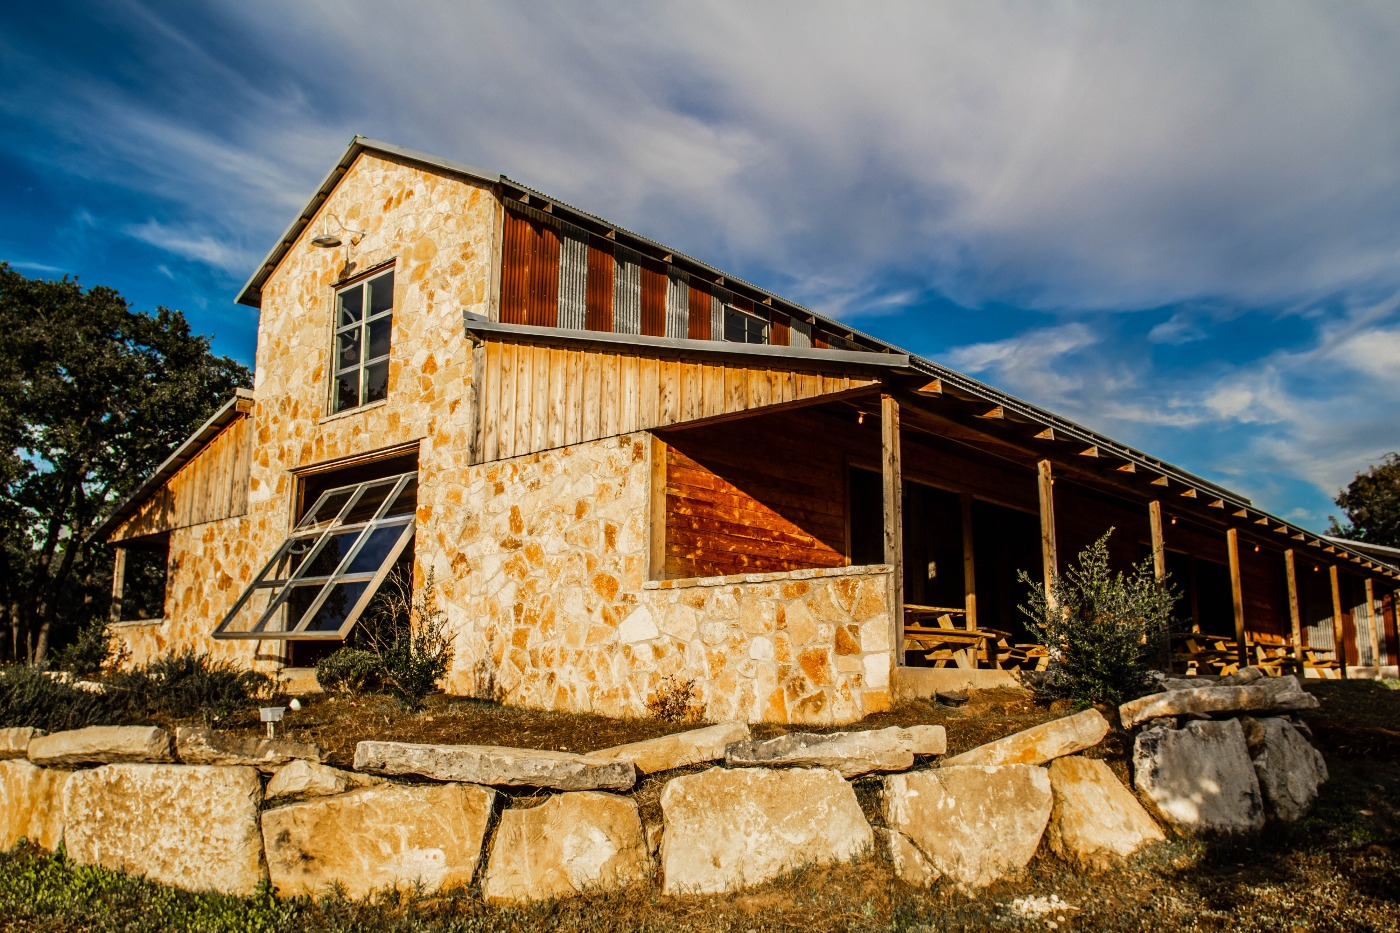 event center day2 anotha 111tt (1).jpg